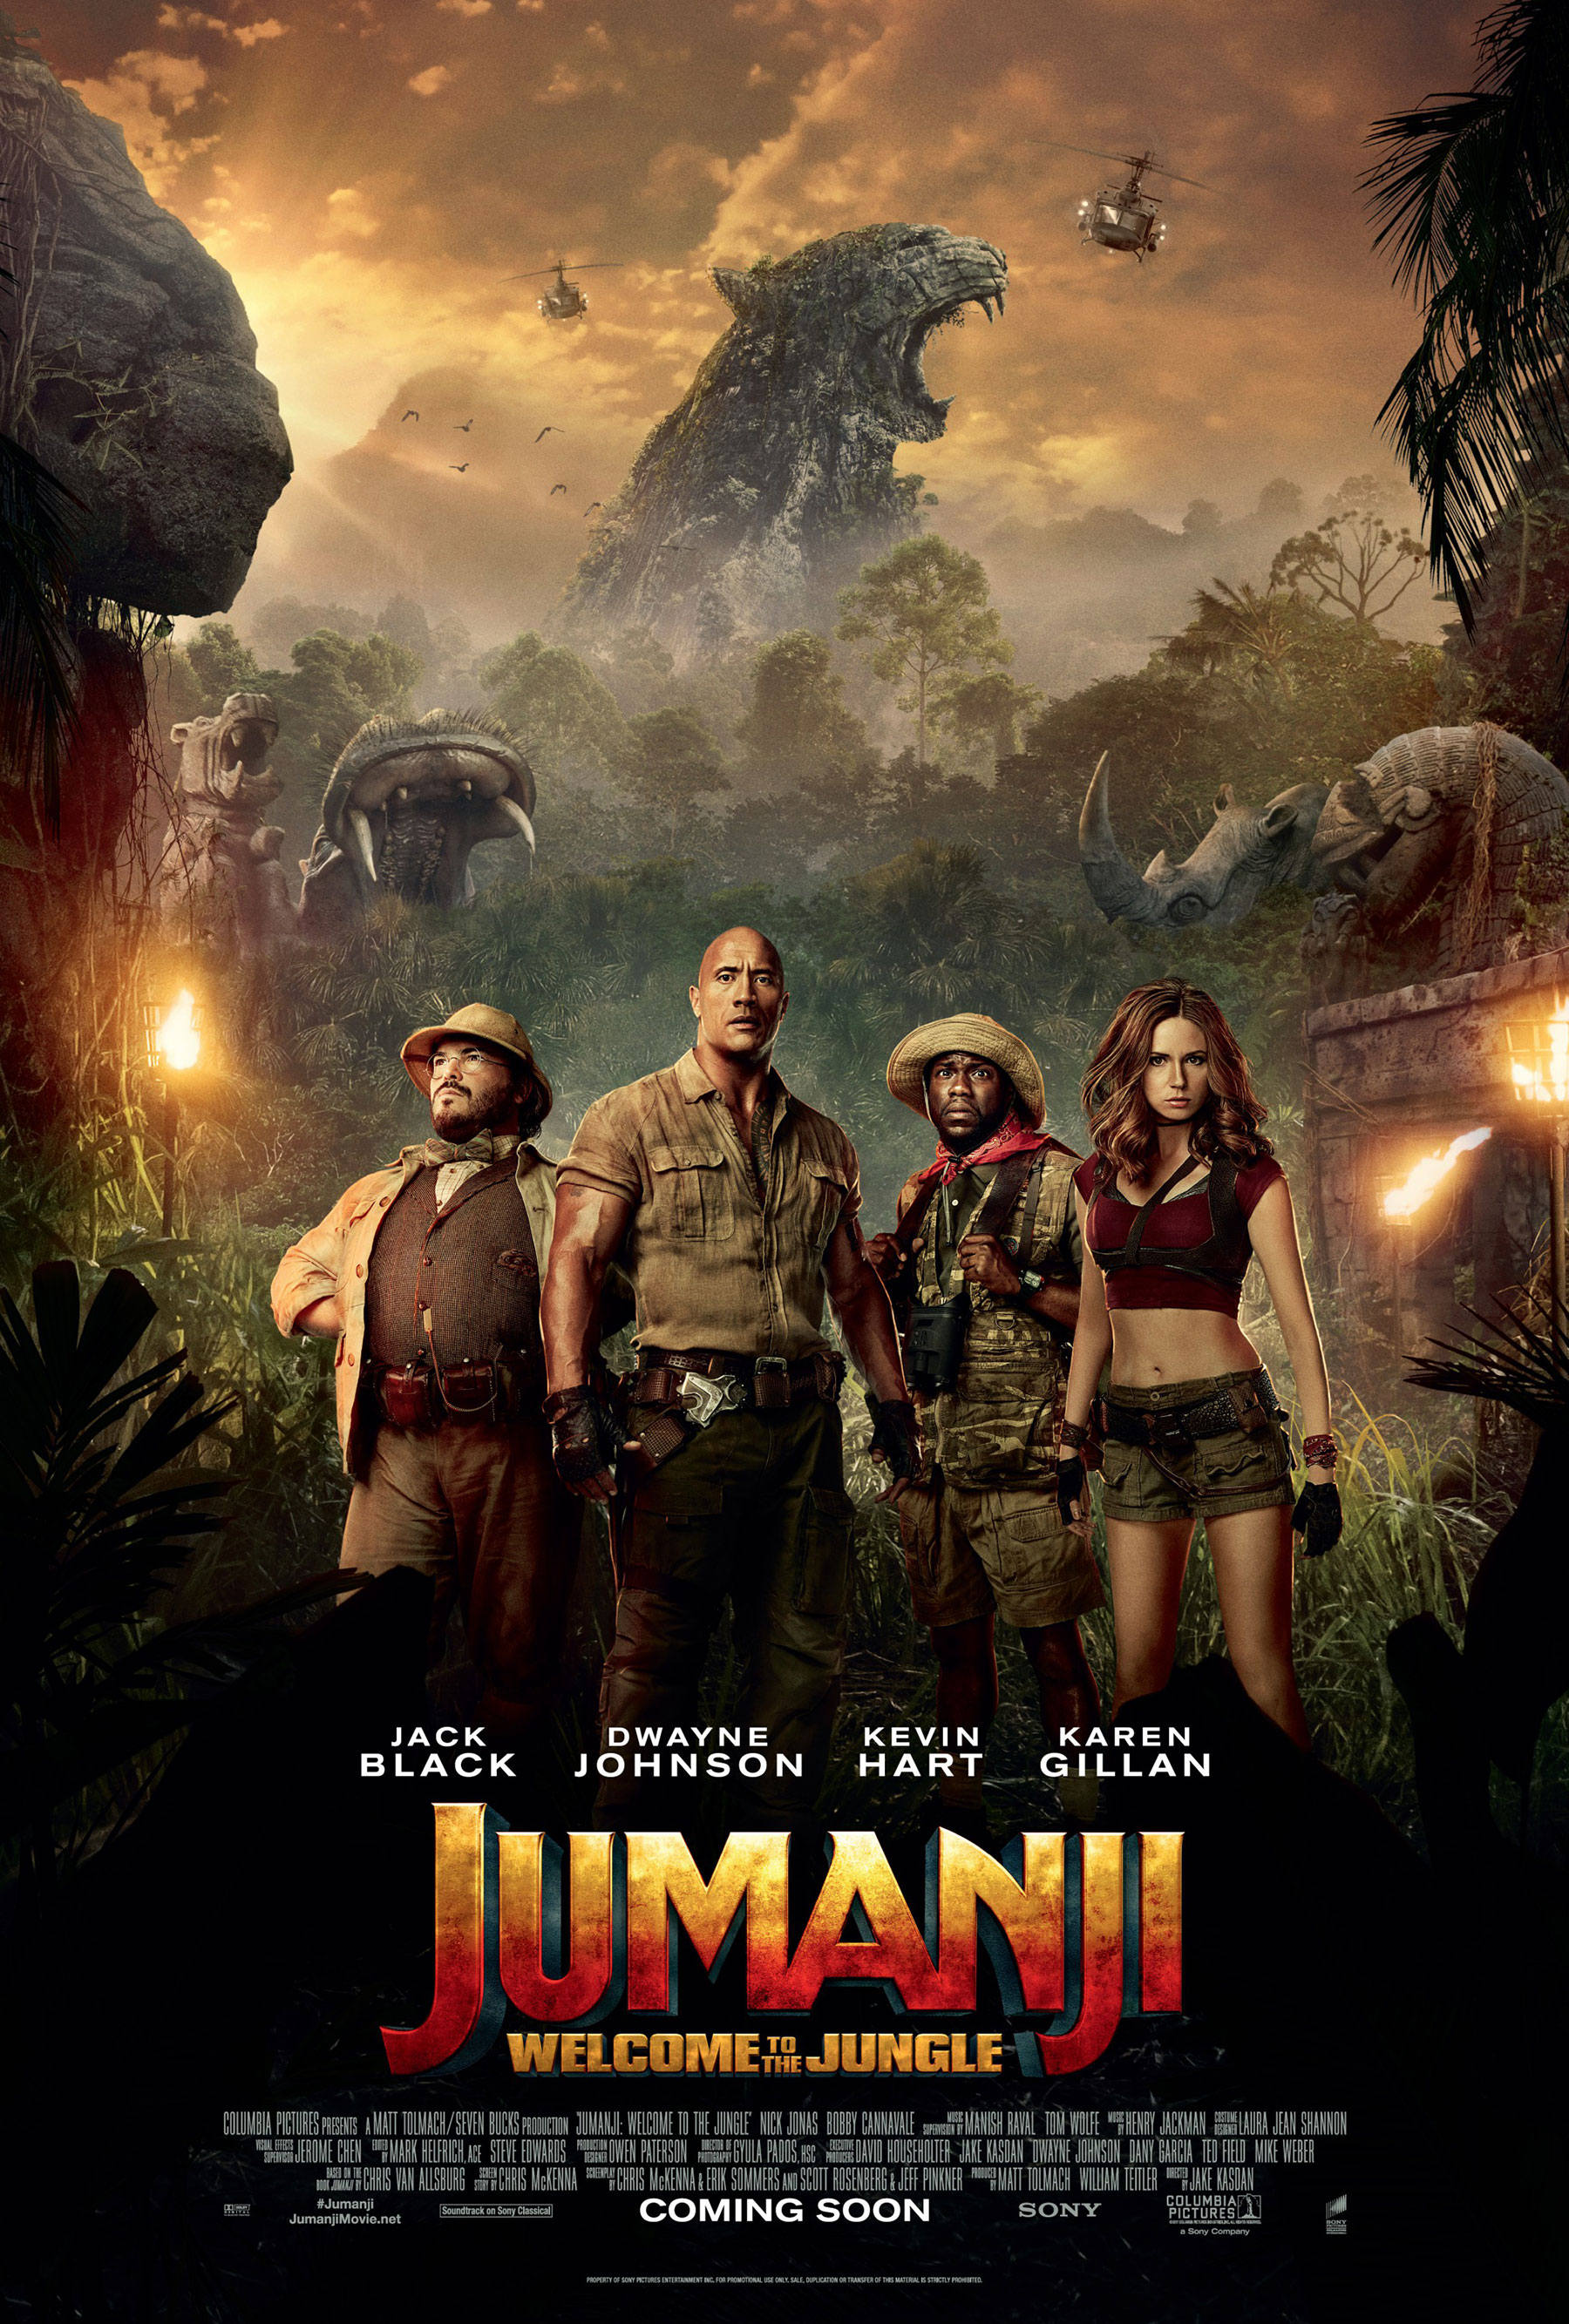 Jumanji (The New One) - 03/27/2021